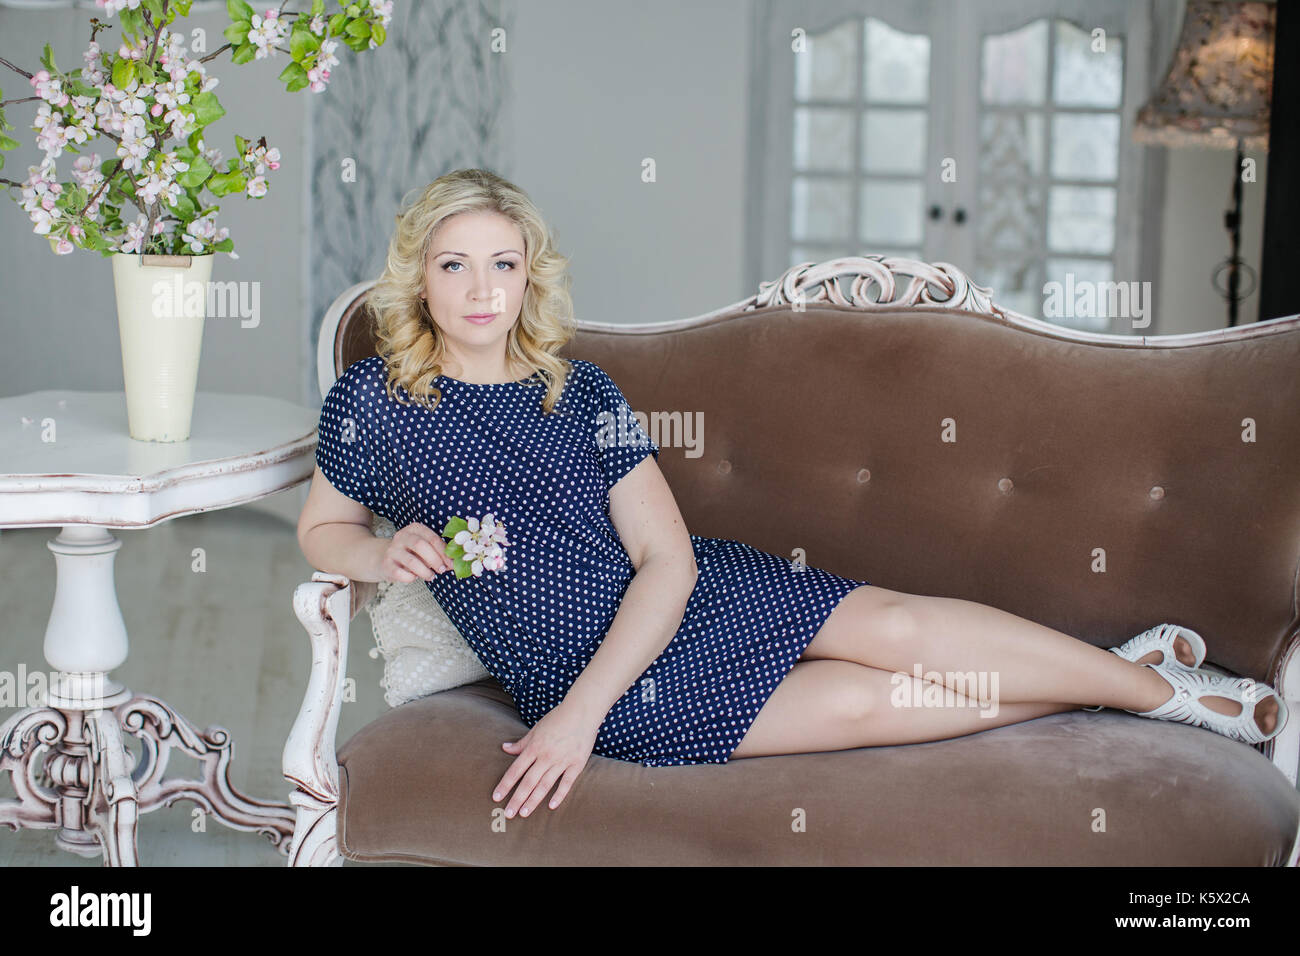 fashion modelling for advertisement - Stock Image